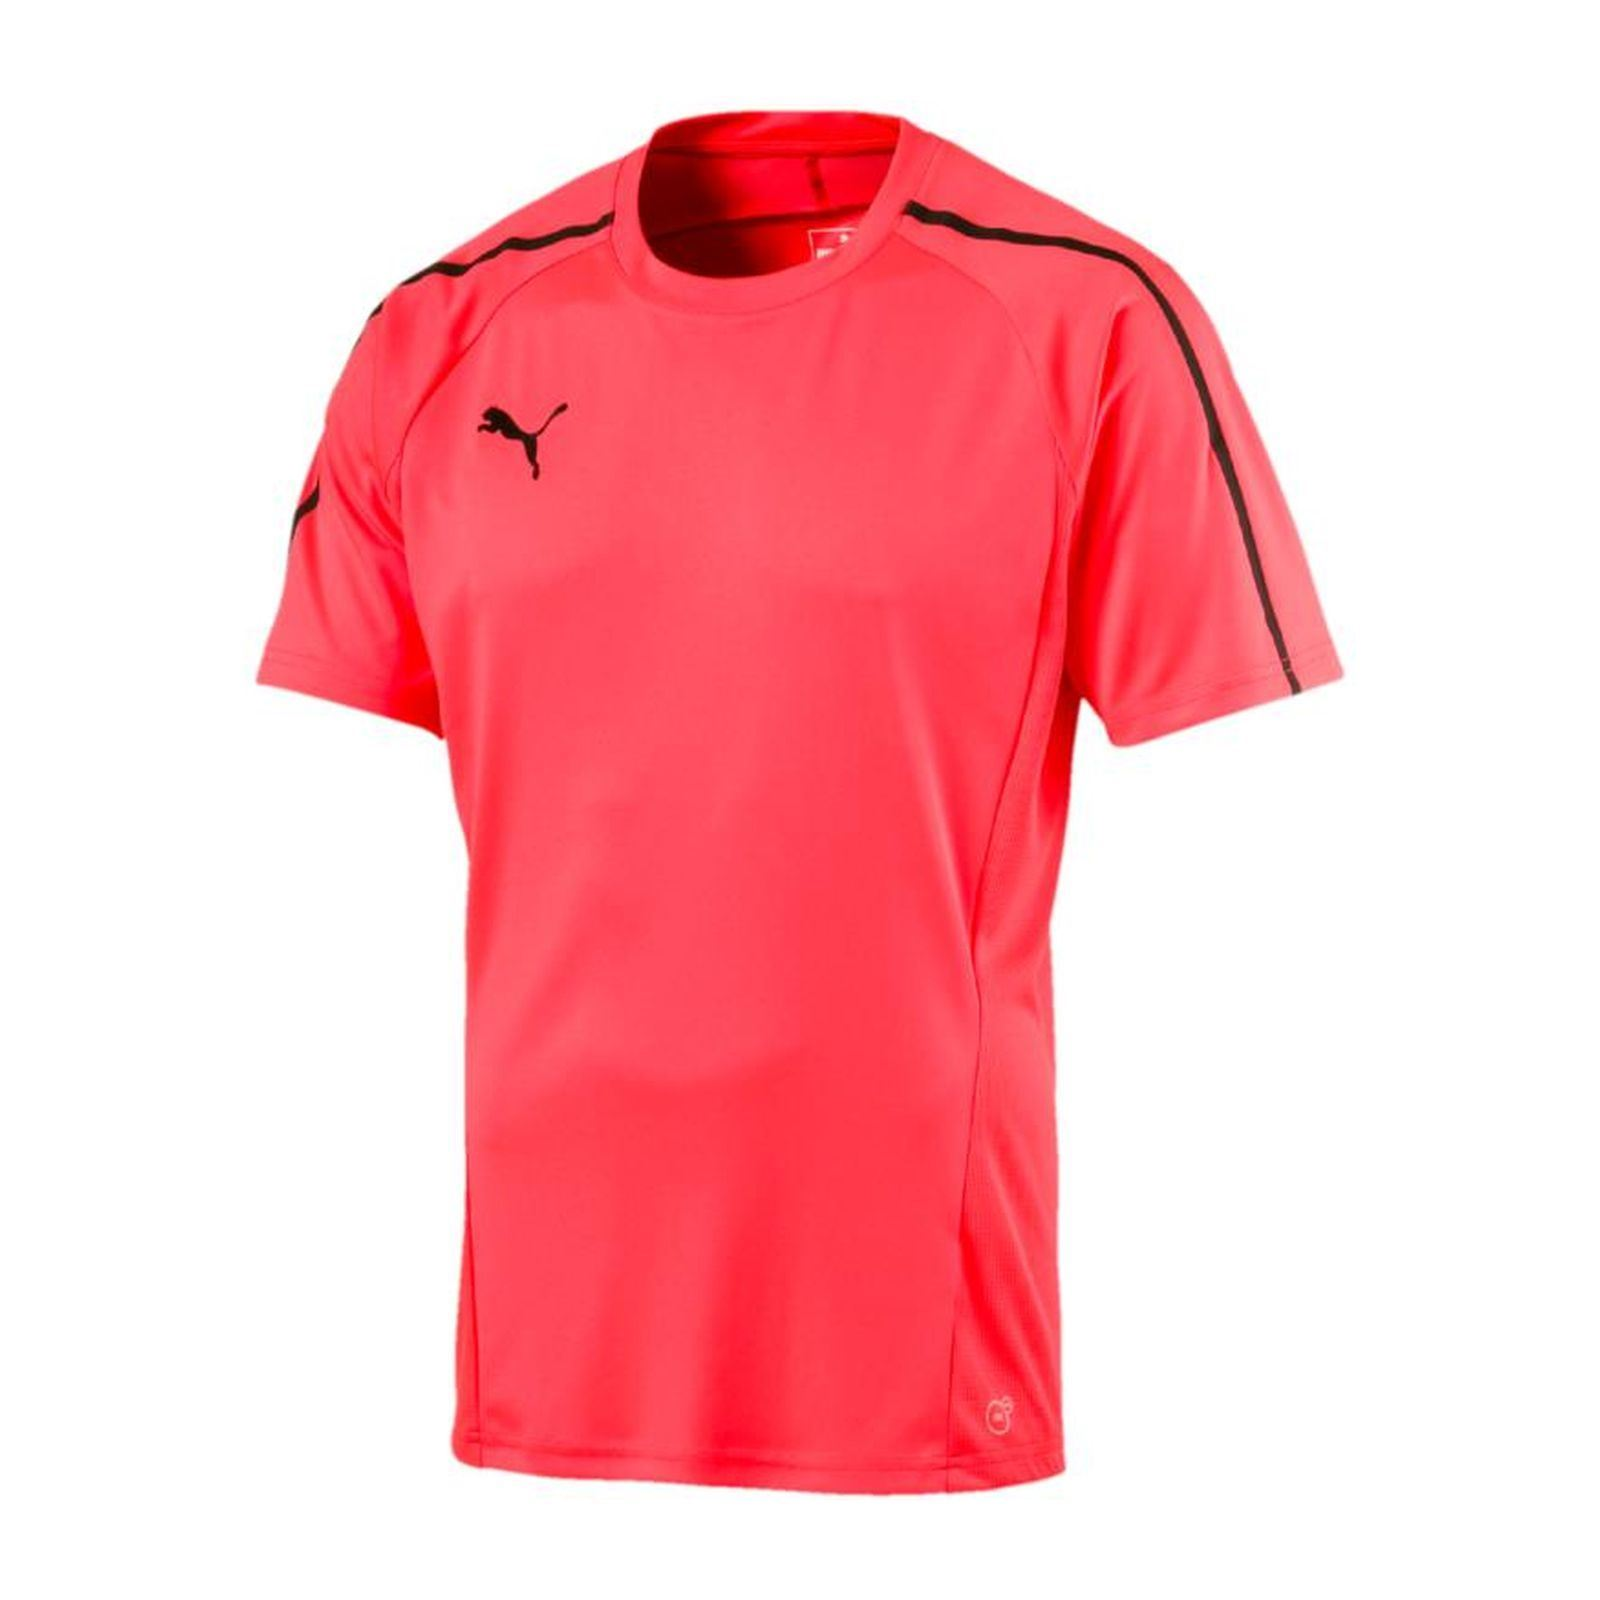 93ee6417f71a Shirt Puma T Courtes Brandalley Manches Orange R1q6Waw1FA